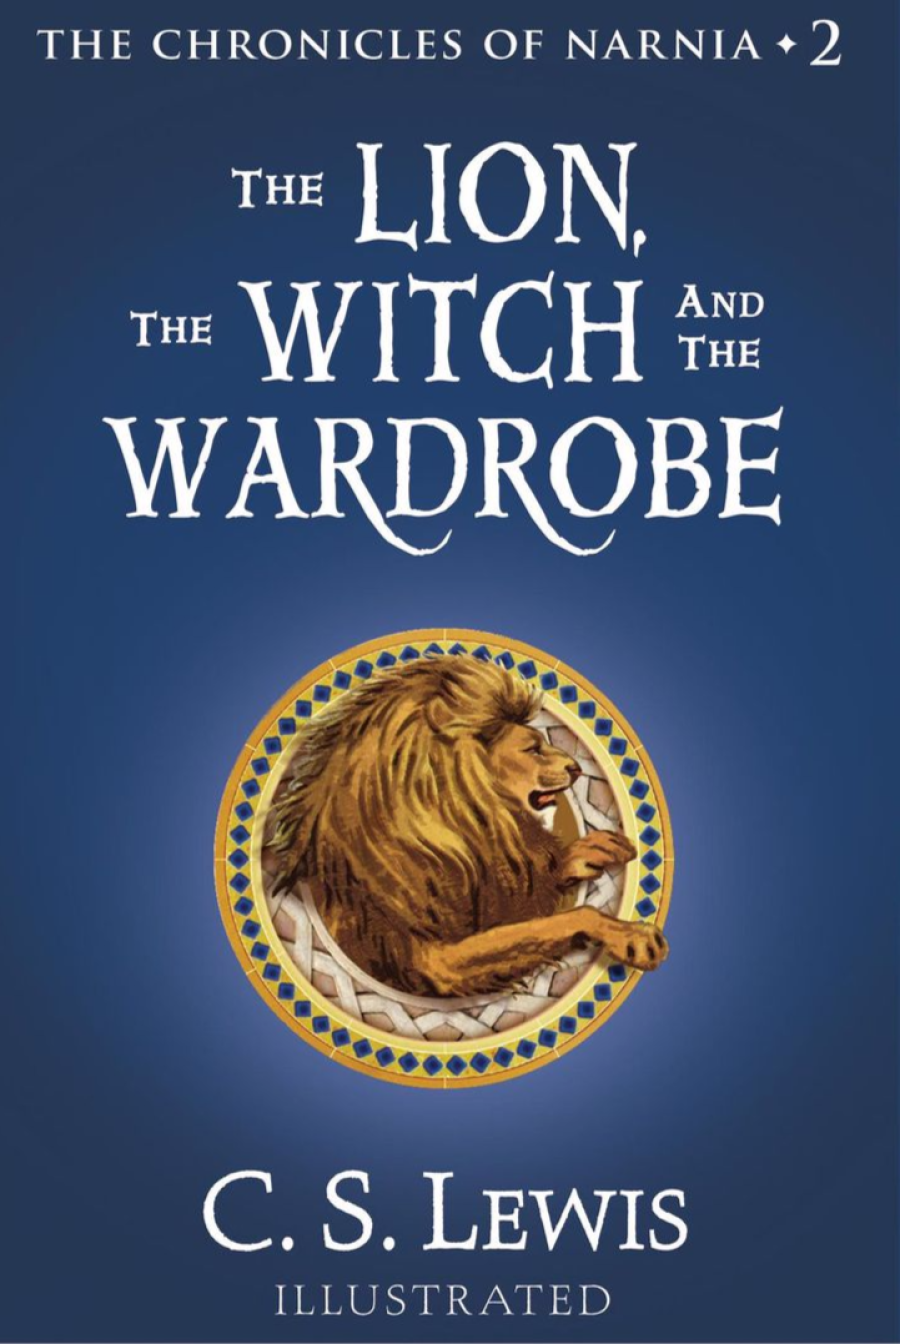 The Lion, The Witch & The Wardrobe by C.S.Lewis